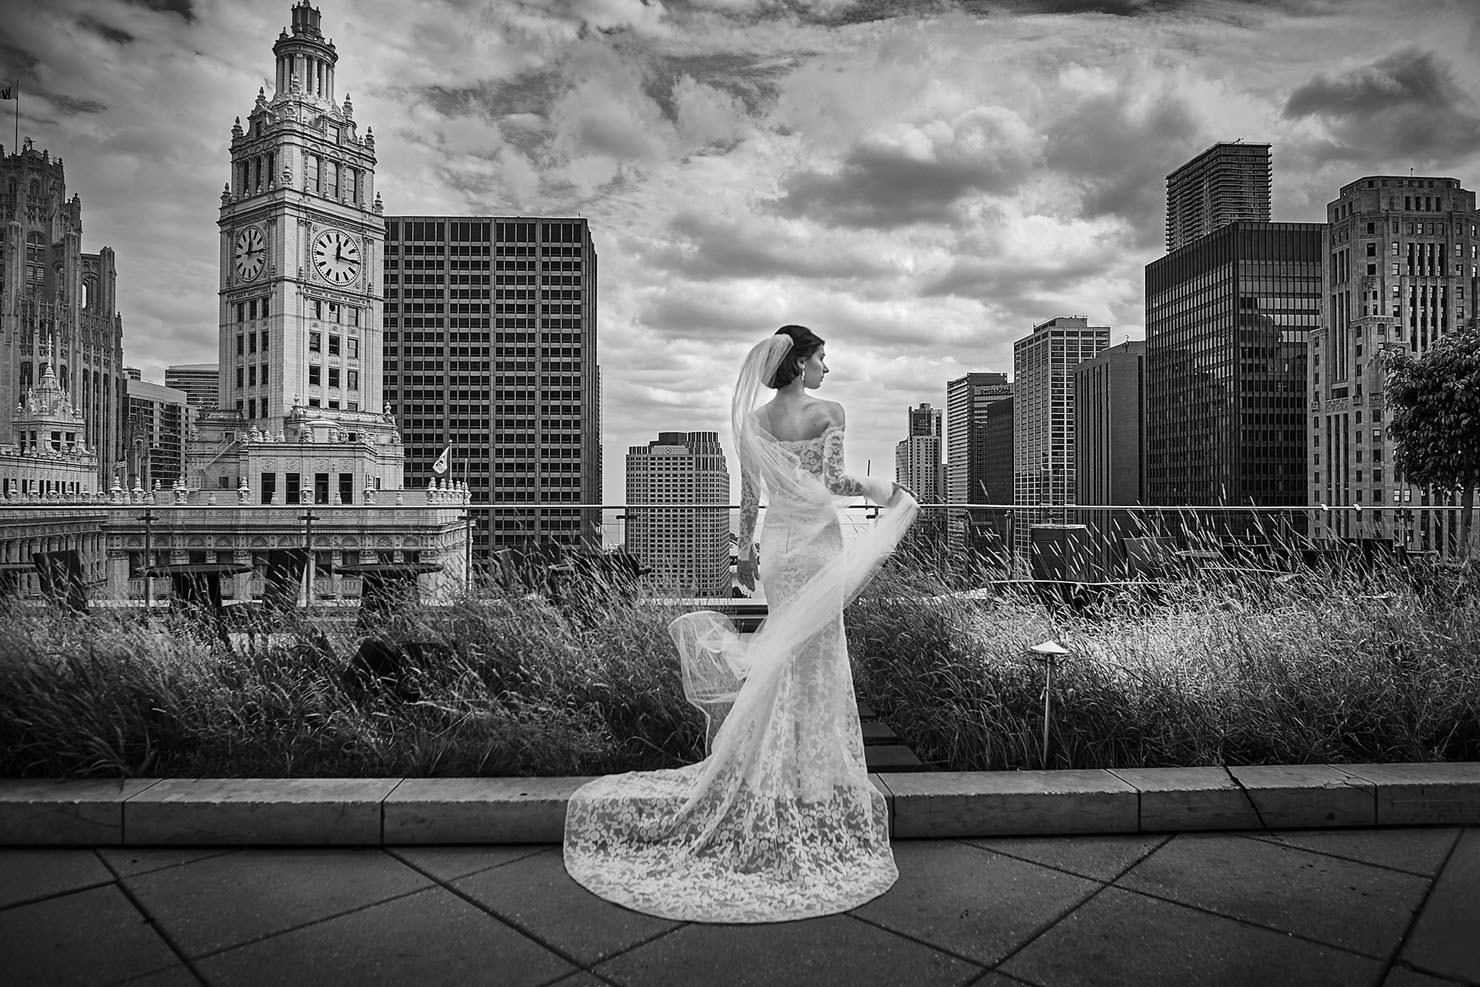 chicago-trumpo-tower-wedding-downtown 5 Steps to Finding The Perfect Wedding Photographer